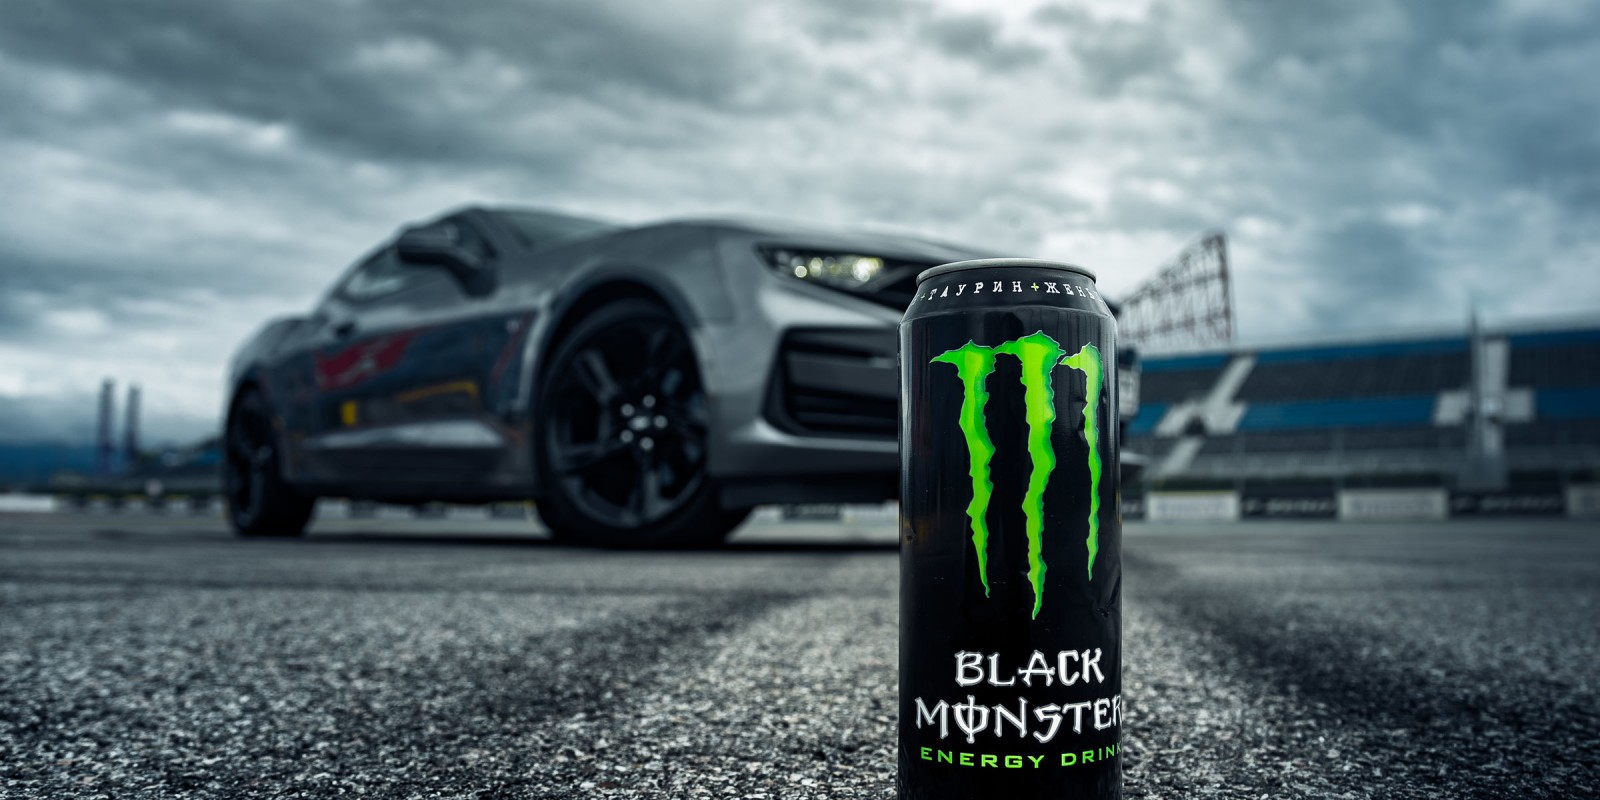 photos for Black Monster on can camaro promo